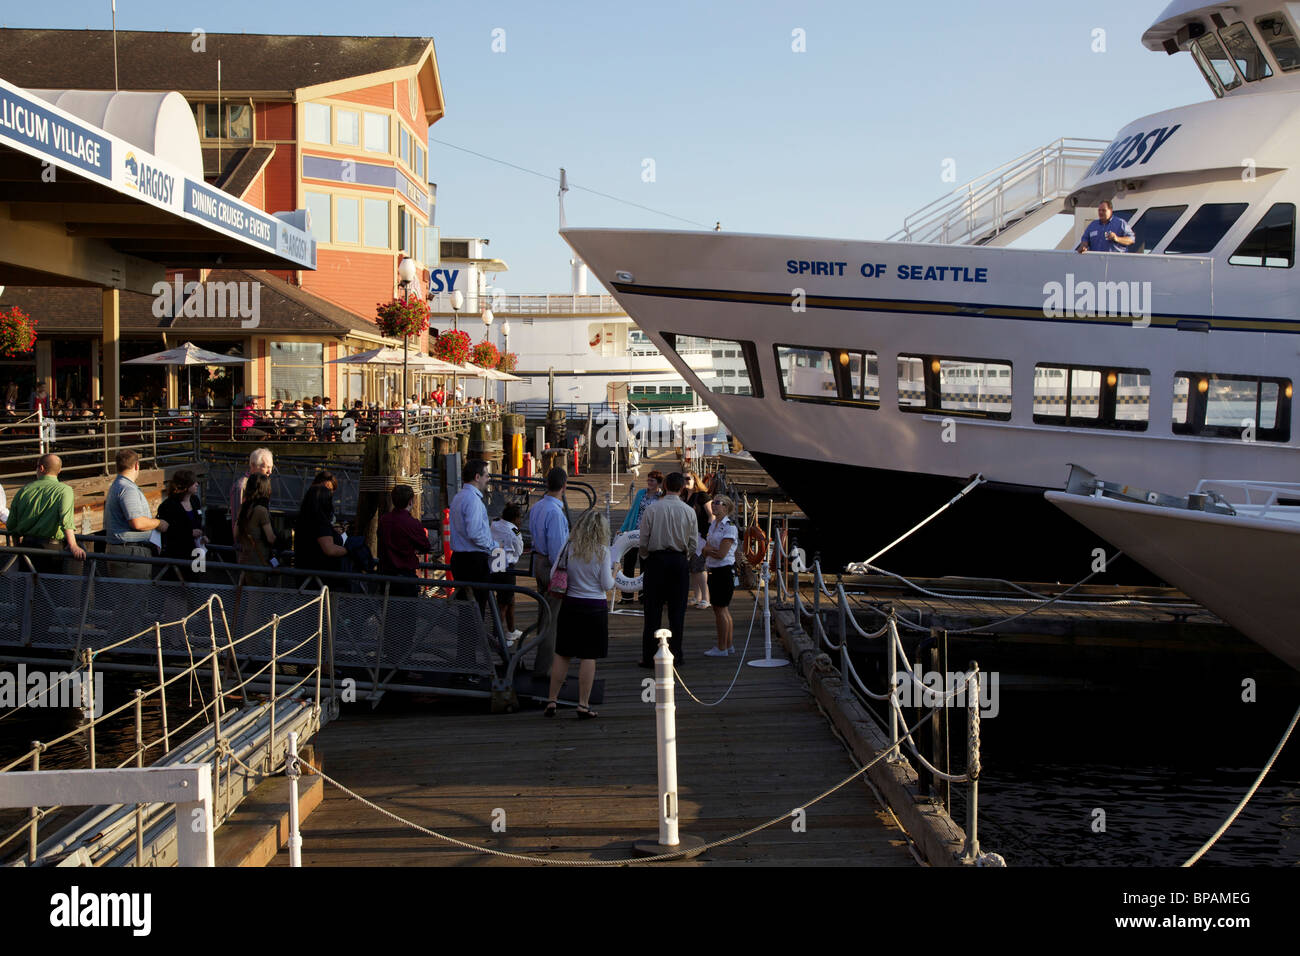 Passengers lined up to embark on dinner cruise. Seattle, Washington. - Stock Image